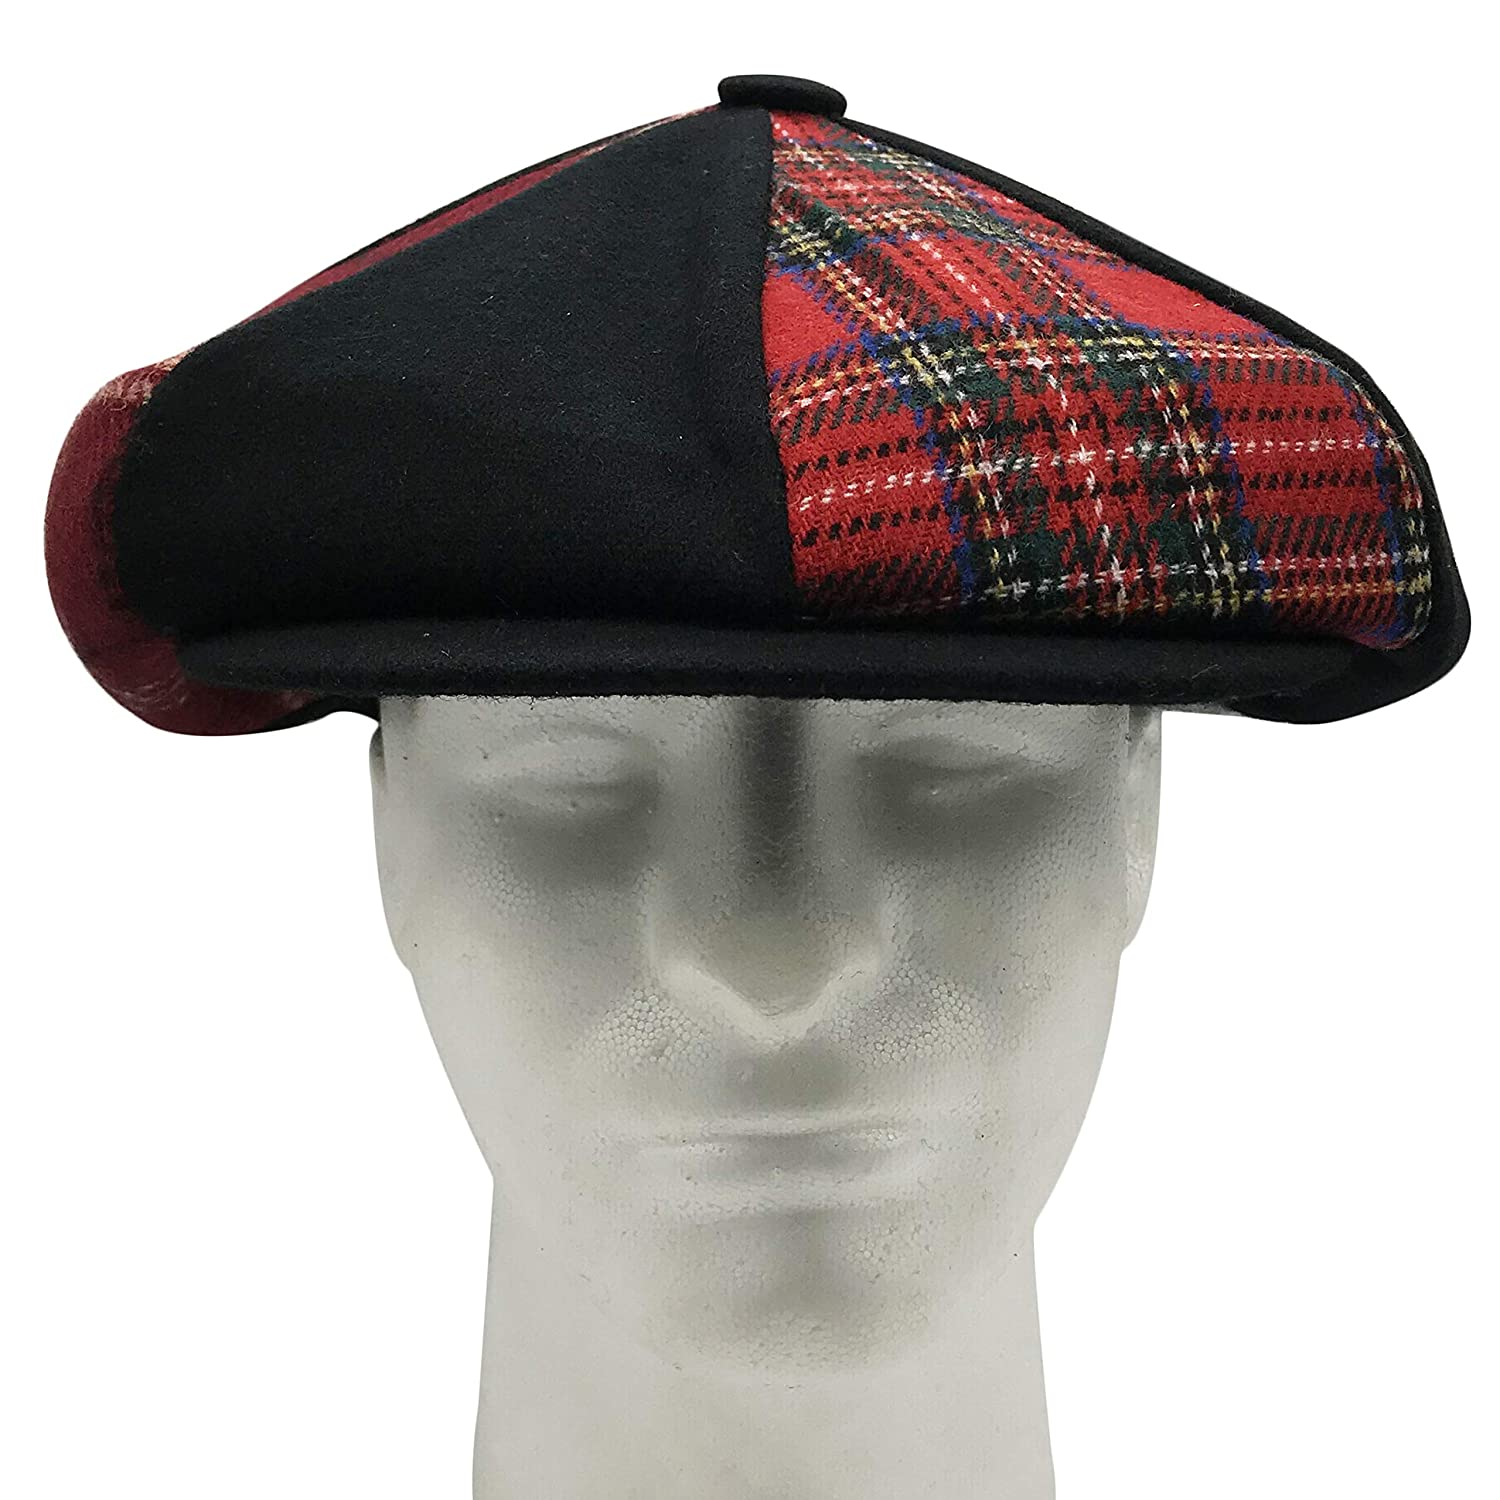 2eaa8c99aab77 Amazon.com: Patch Combo Wool Applejack Newsboy Cap Made in USA  (BlackPatch): Clothing